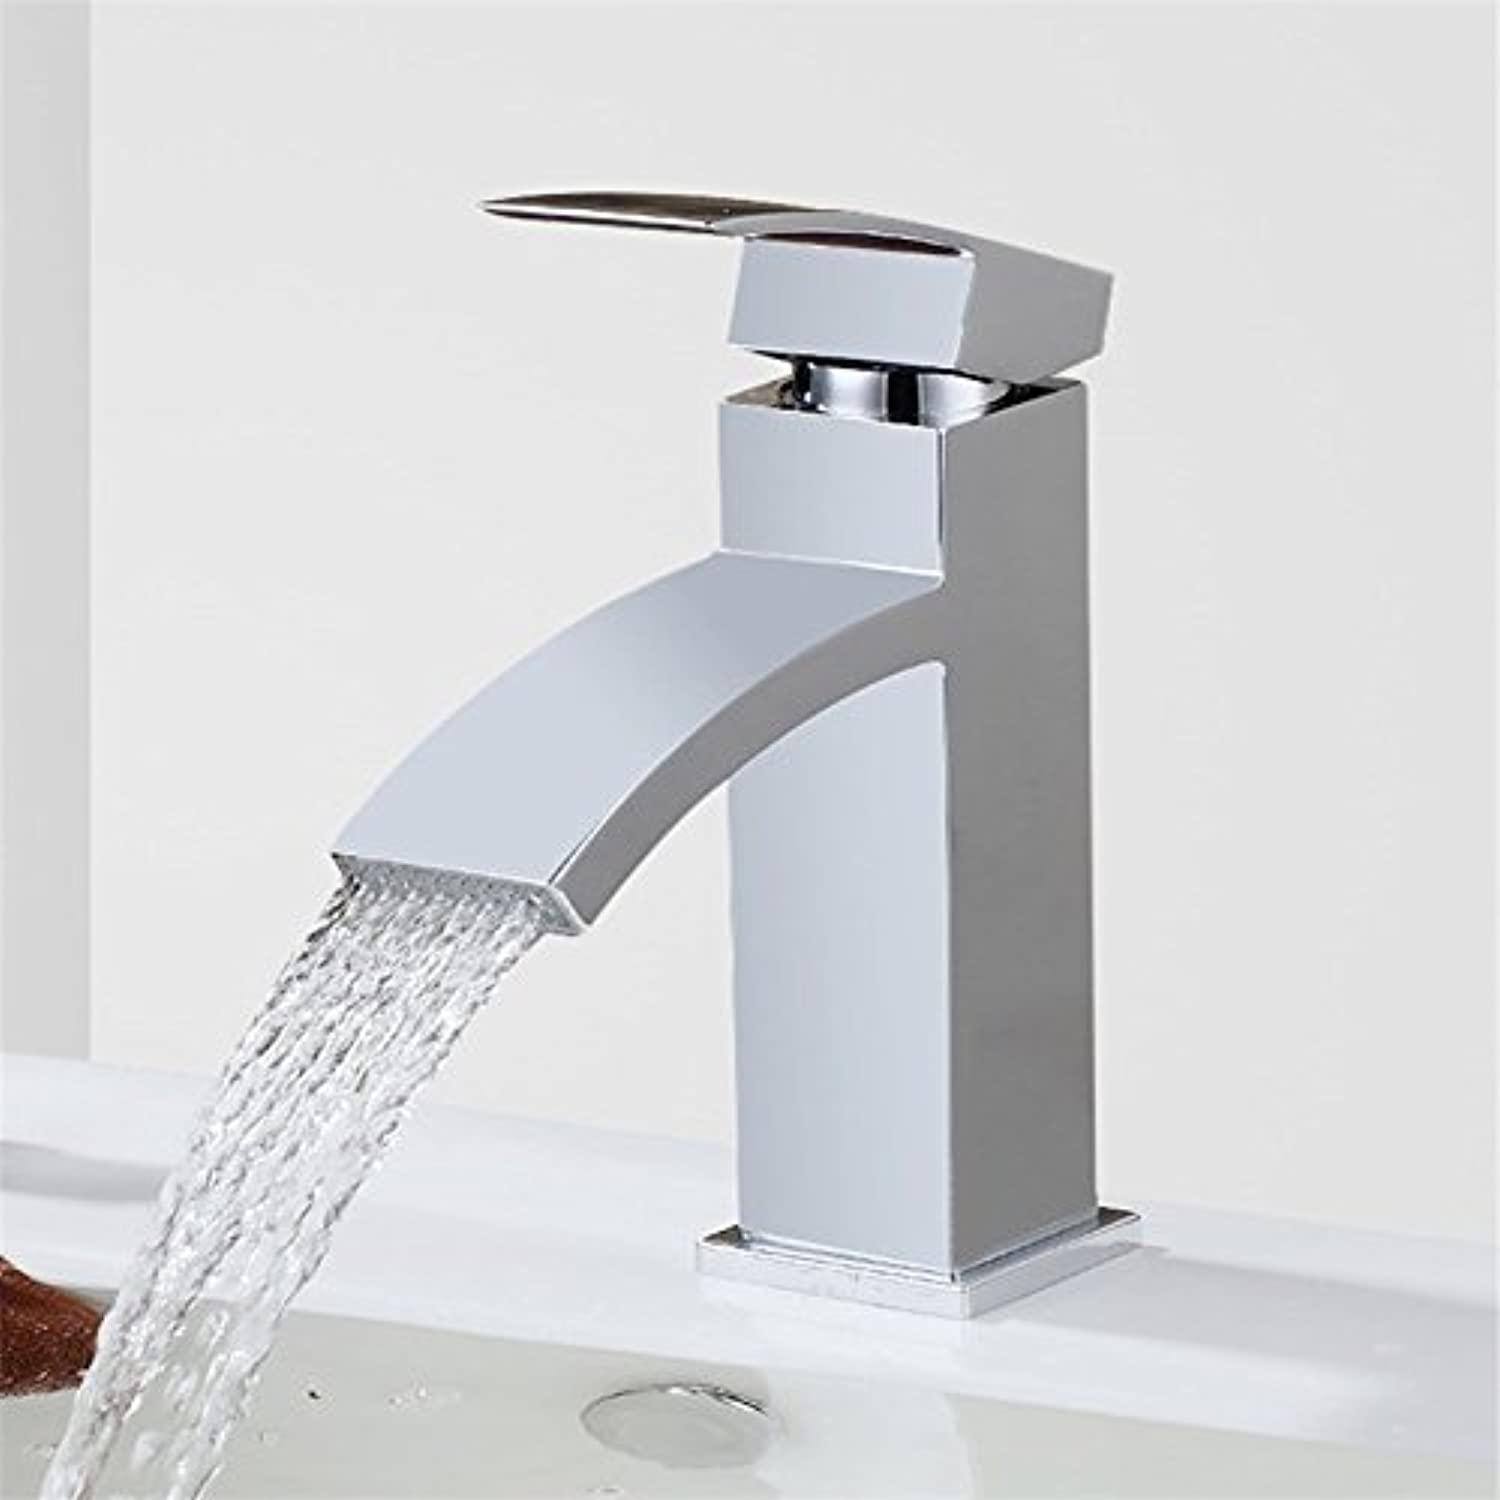 Gyps Faucet Basin Mixer Tap Waterfall Faucet Antique Bathroom The Waterfall Single Handle Flat Nose basin wide nozzle, hot and cold water faucet Chrome color stainless steel bathroom kitchen sink